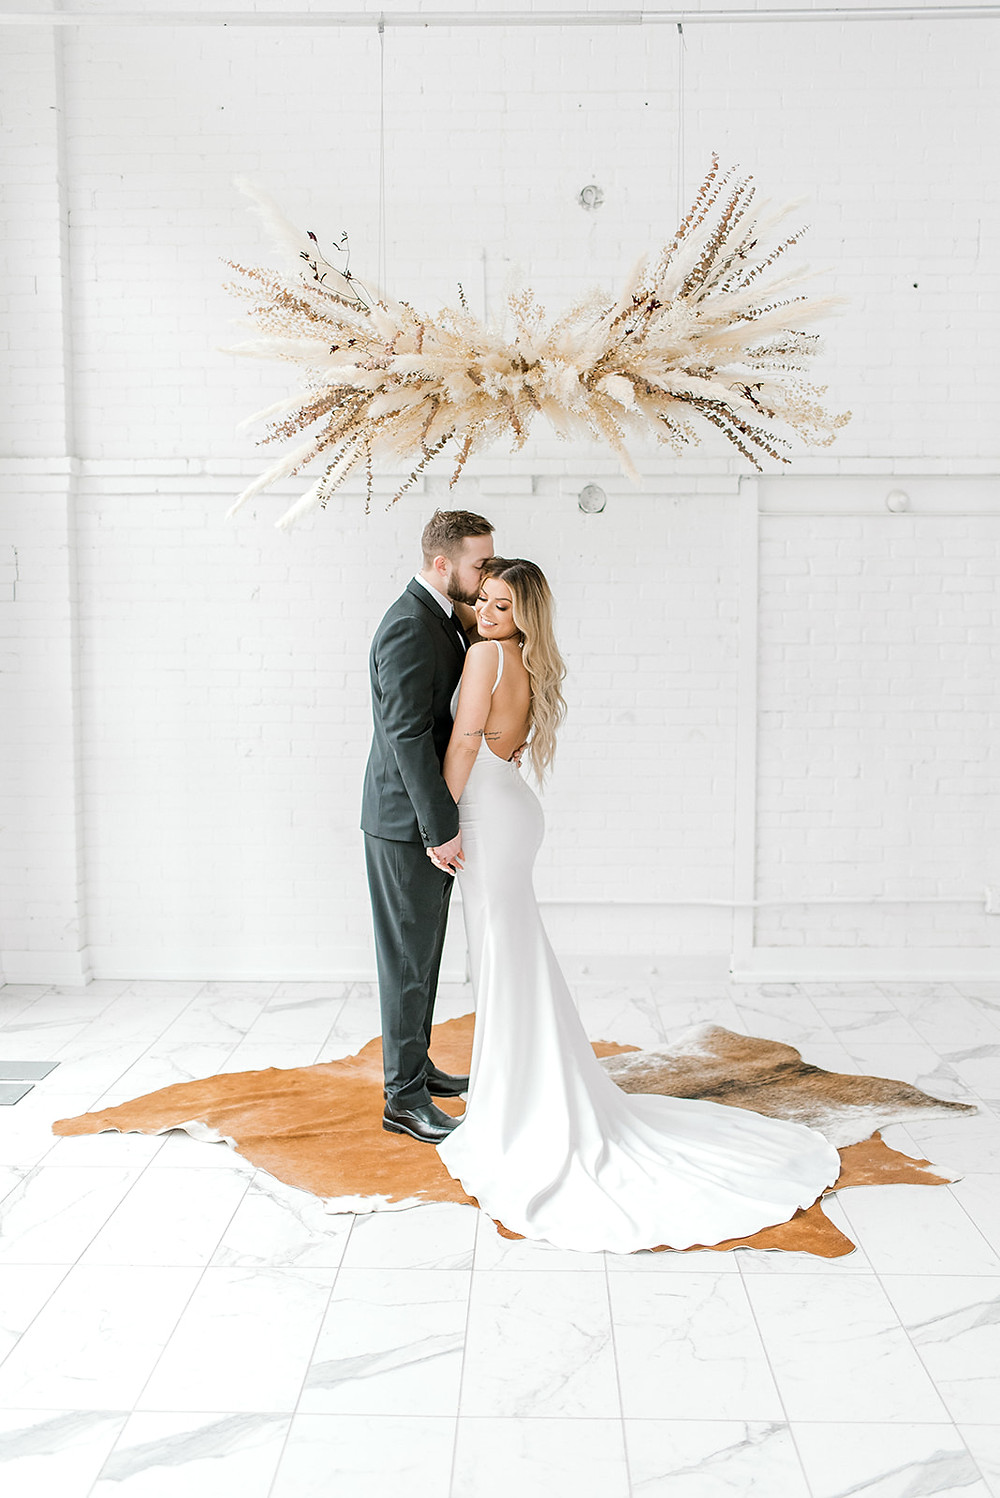 hanging pampas grass ceremony arrangement by Studio Bloom Iowa with modern bride and groom